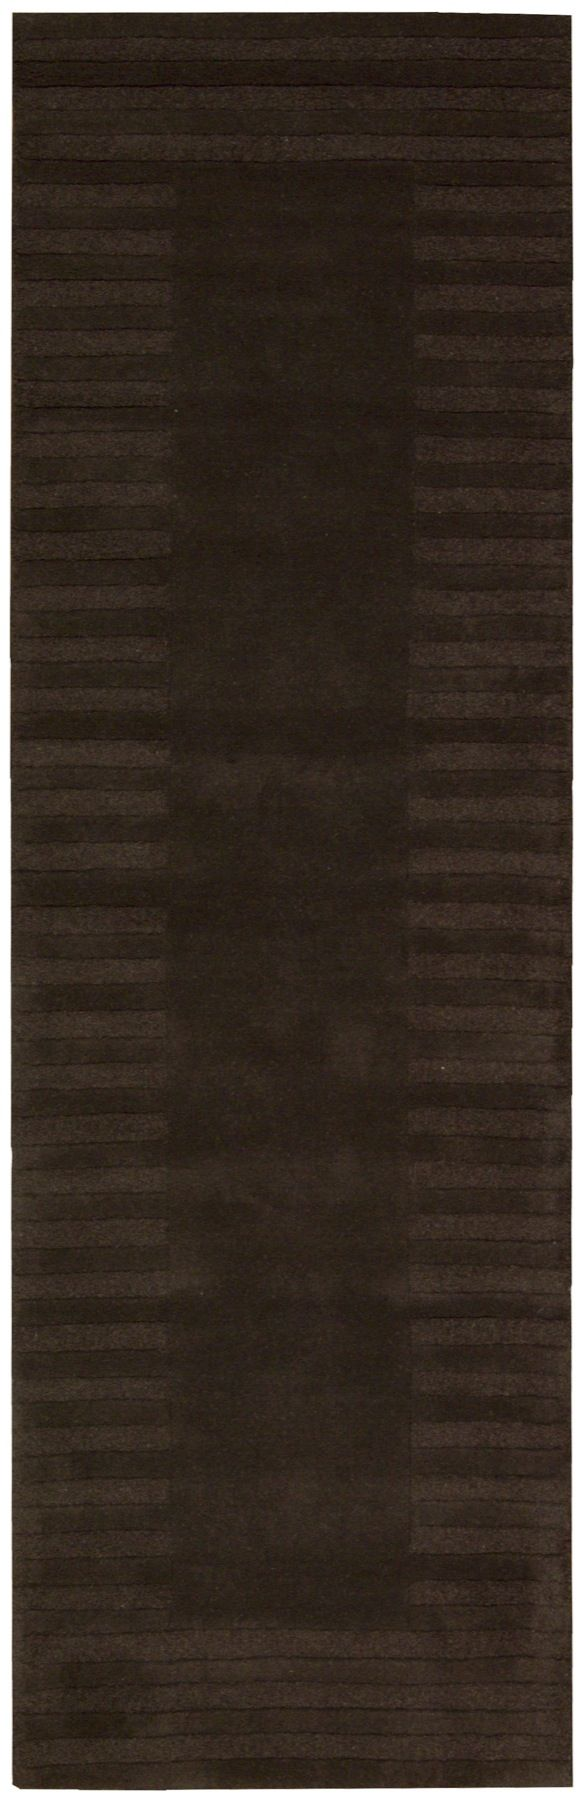 nourison india house contemporary area rug collection